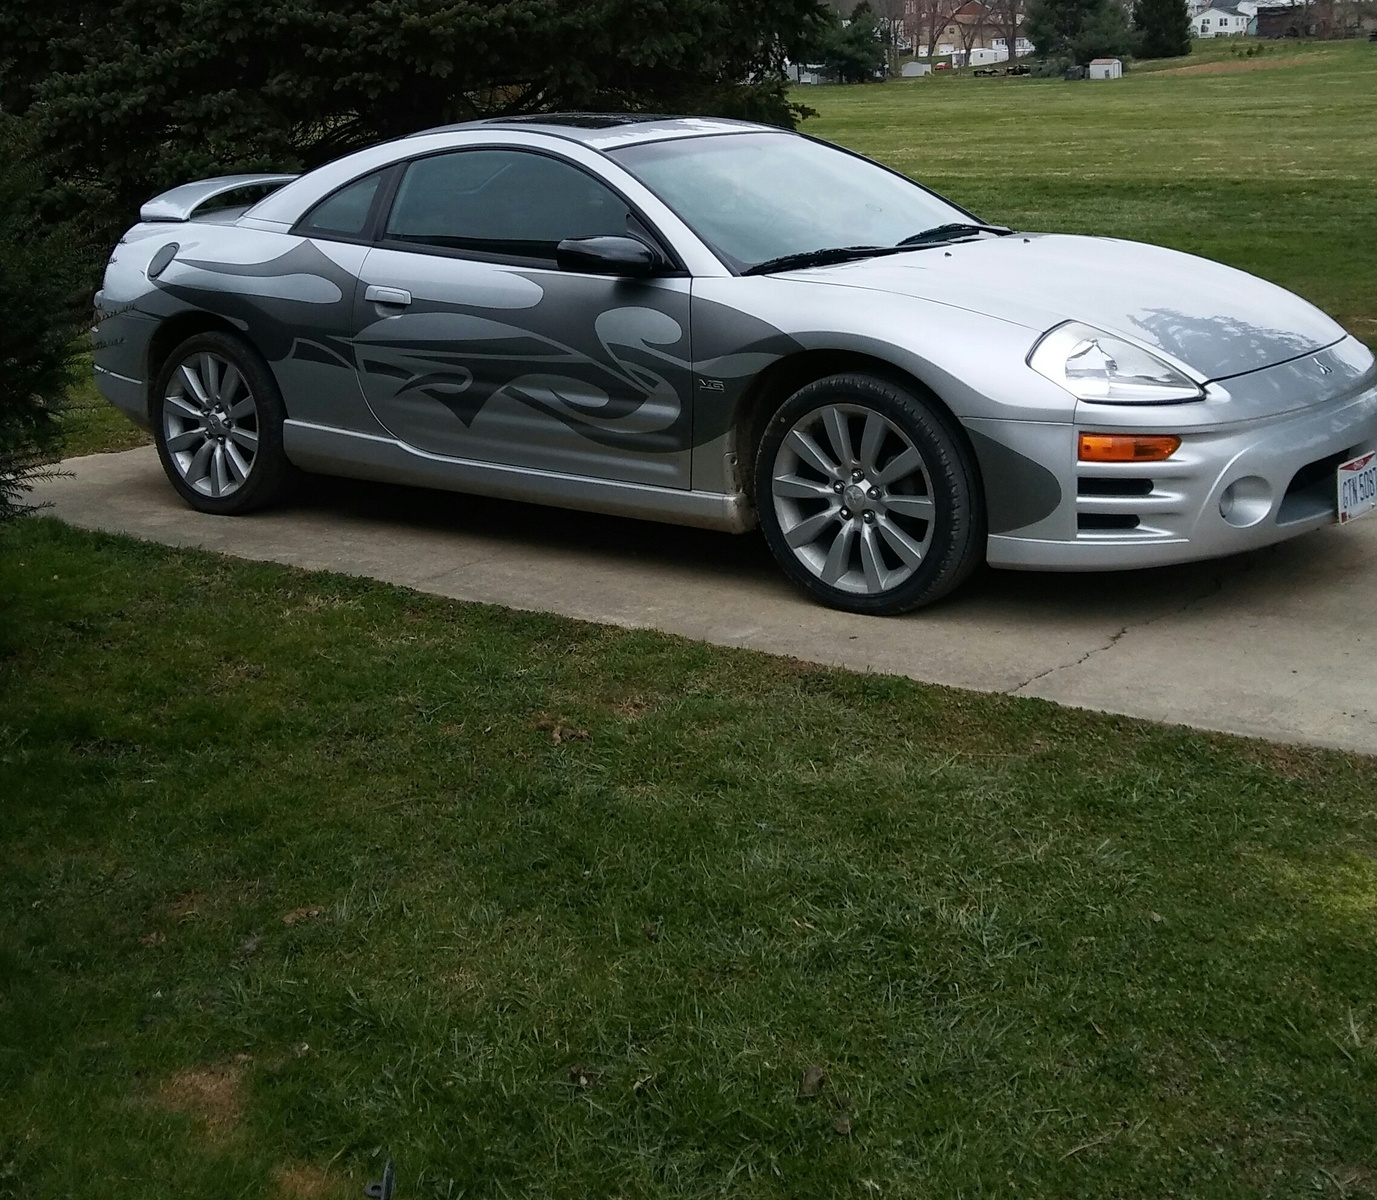 mitsubishi eclipse questions - what does it mean when an ecplise